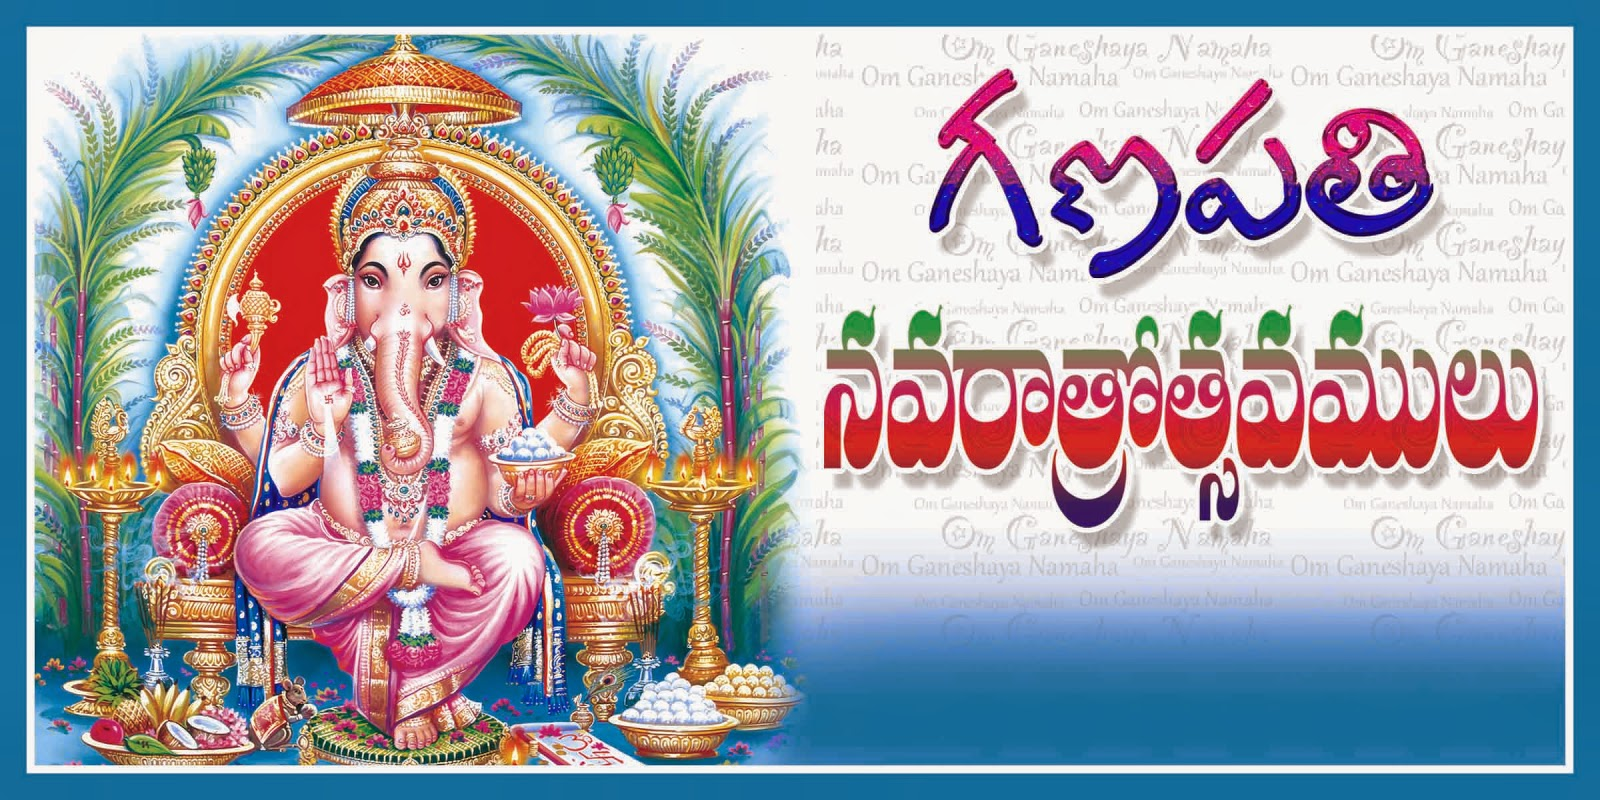 nice-saying-vinayaka-chavithi-quotes-in-telugu-language-naveengfx.com